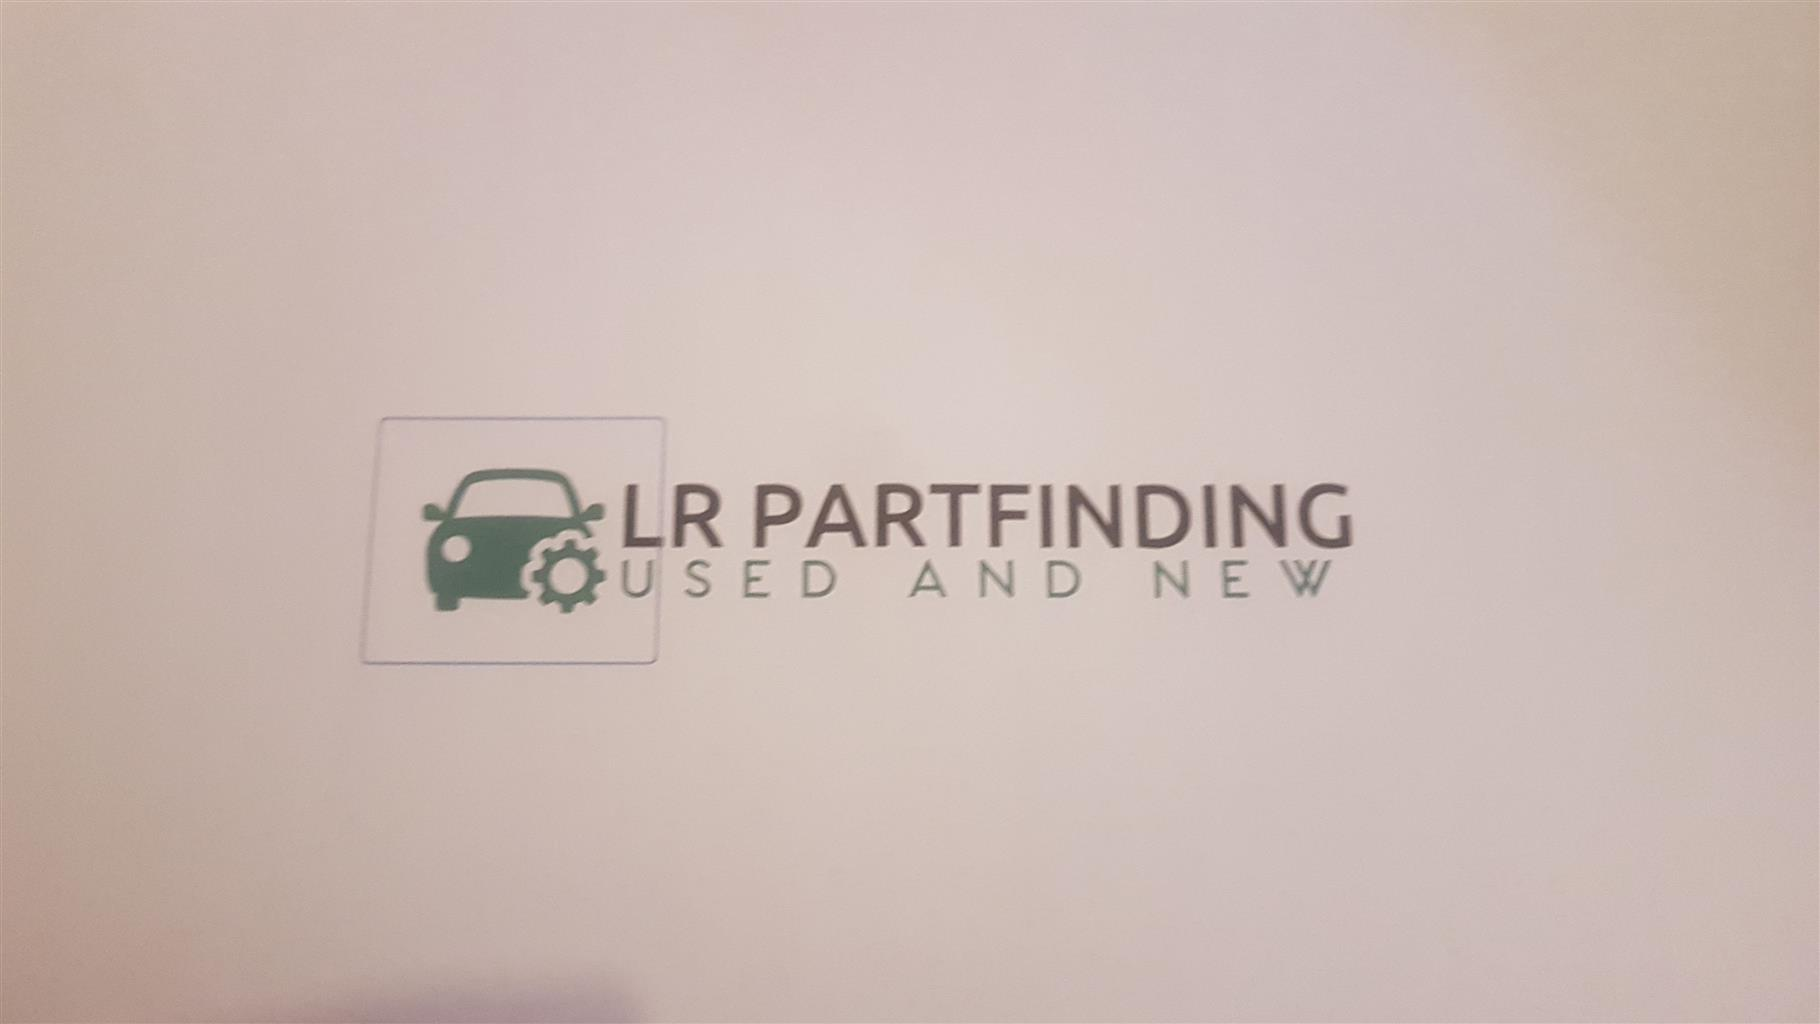 PARTFINDER IS OUR GAME WE GET ALL THE PARTS YOU ARE LOOKING FOR ...